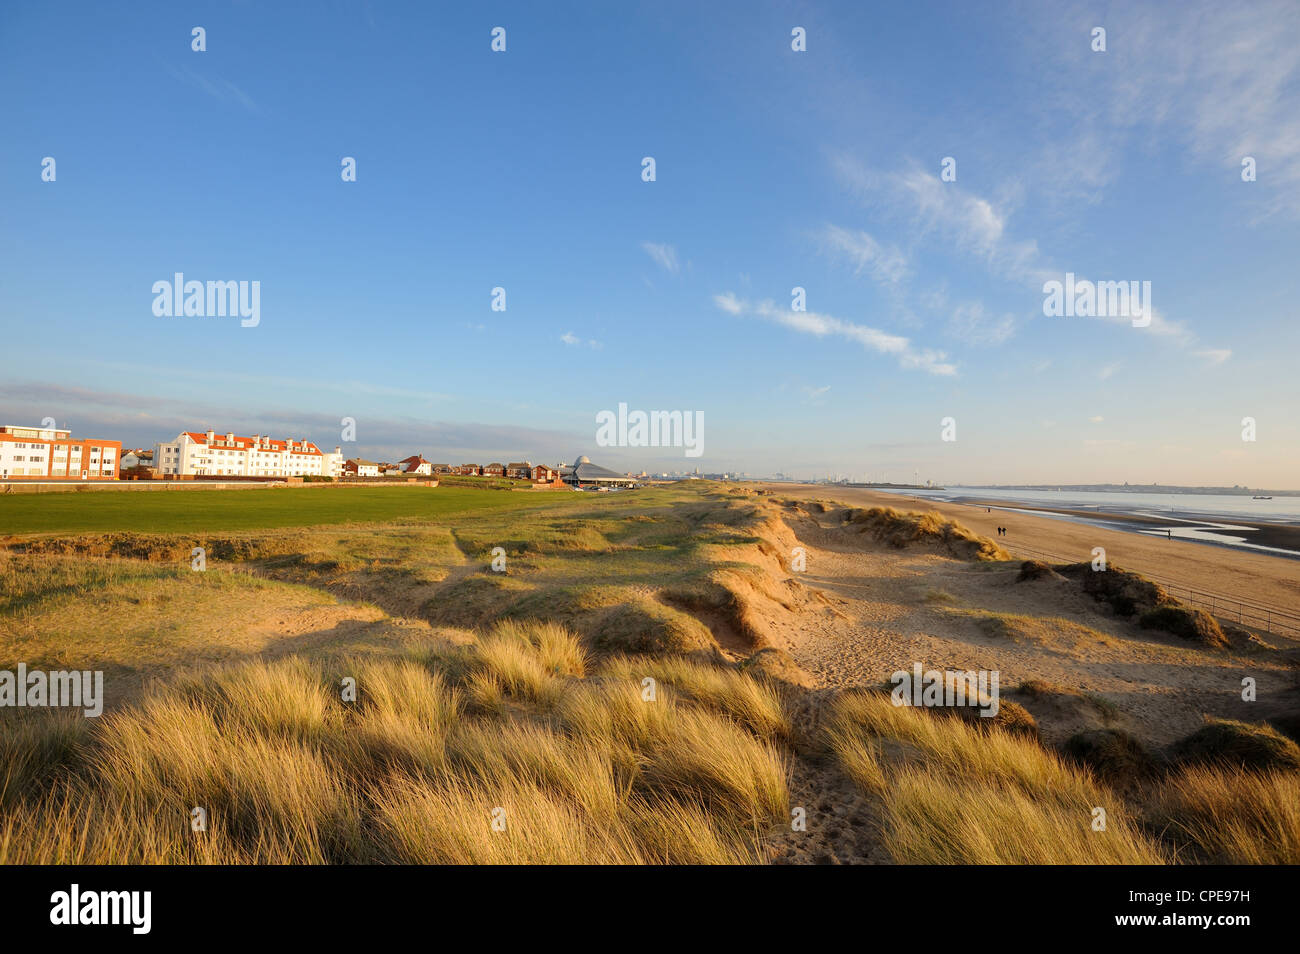 Sand dunes, Crosby Beach, Merseyside, England, United Kingdom, Europe - Stock Image